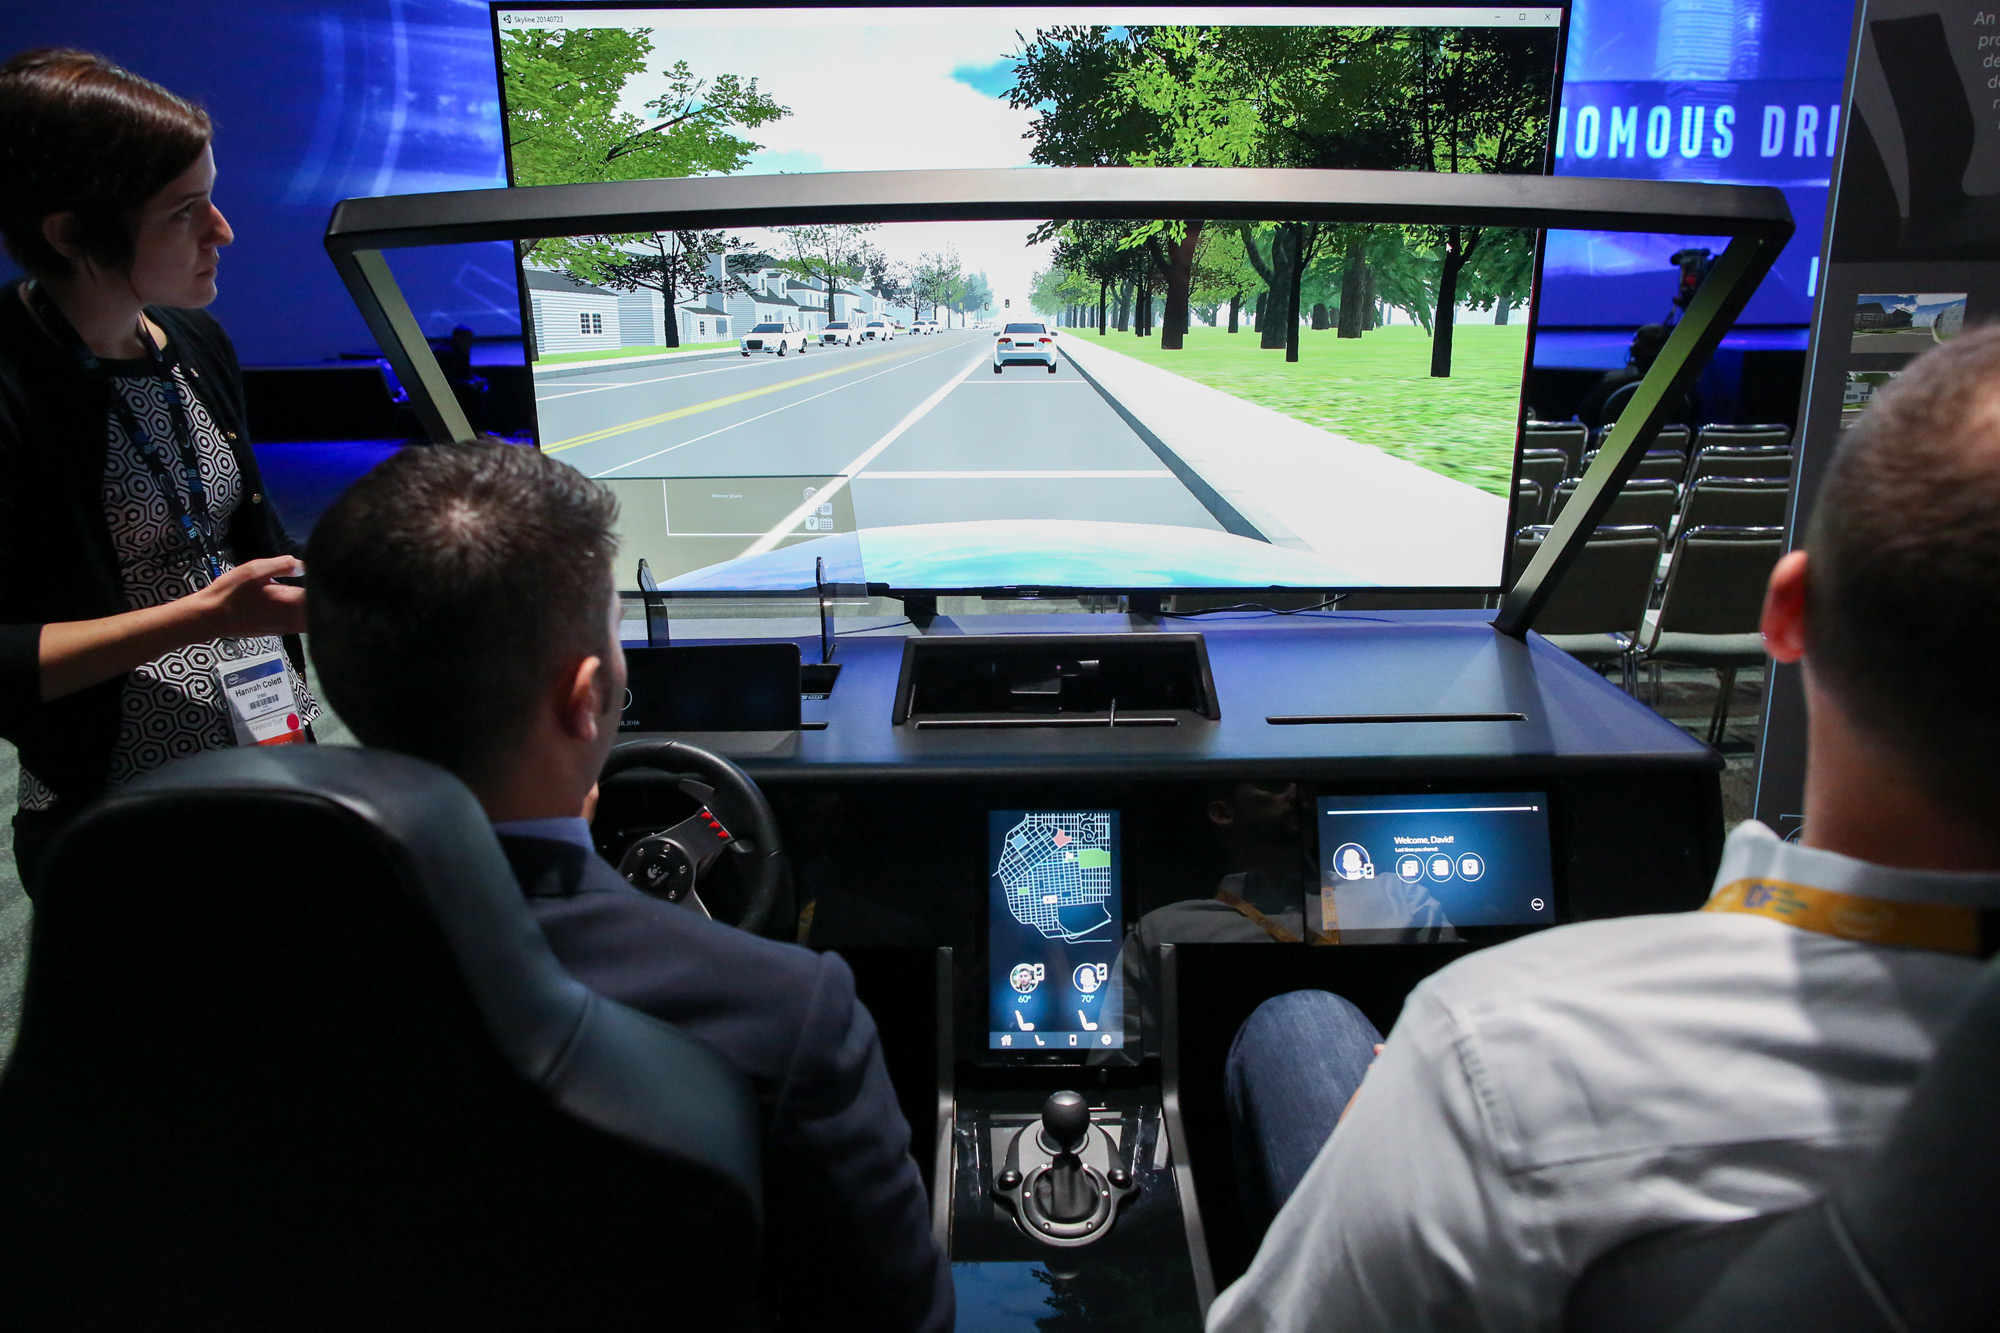 Intel self-driving car simulator